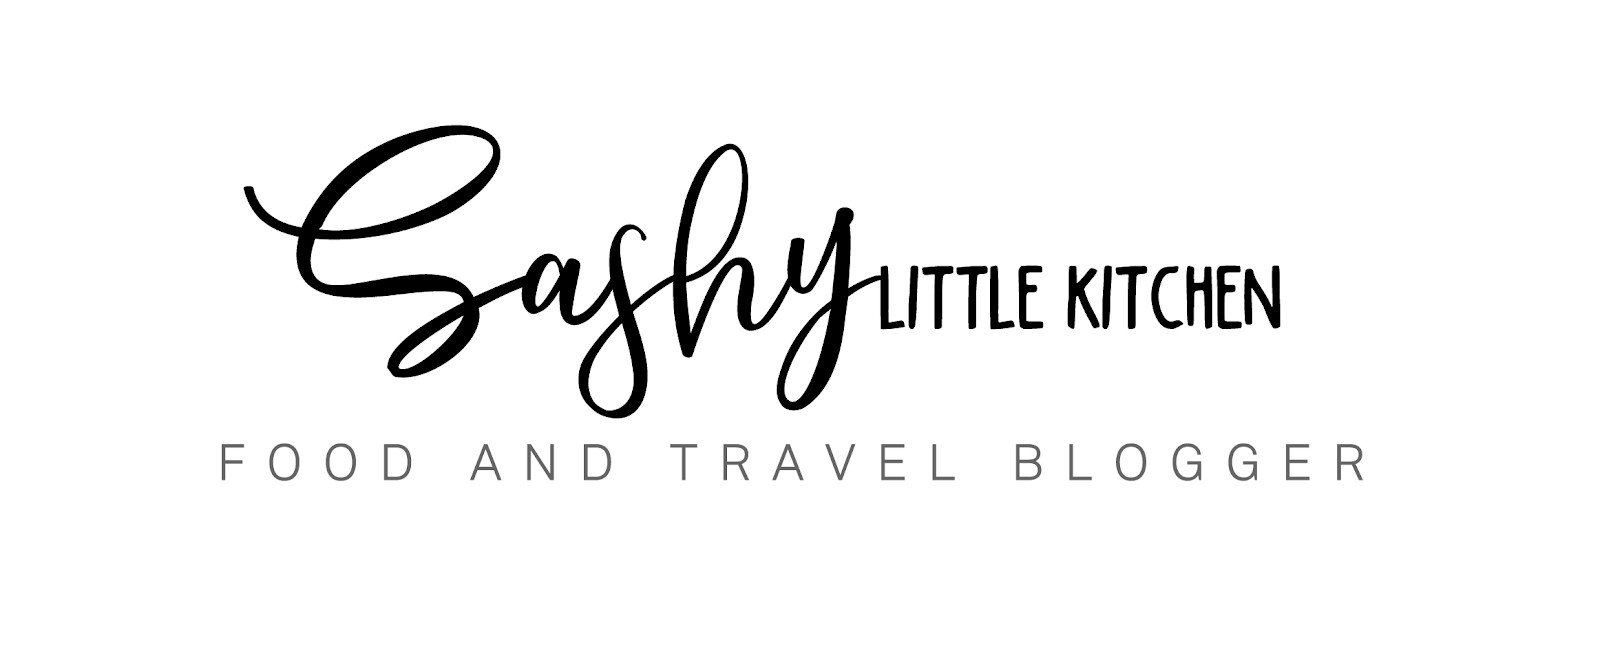 Sashy Little Kitchen: Food and Travel Blogger